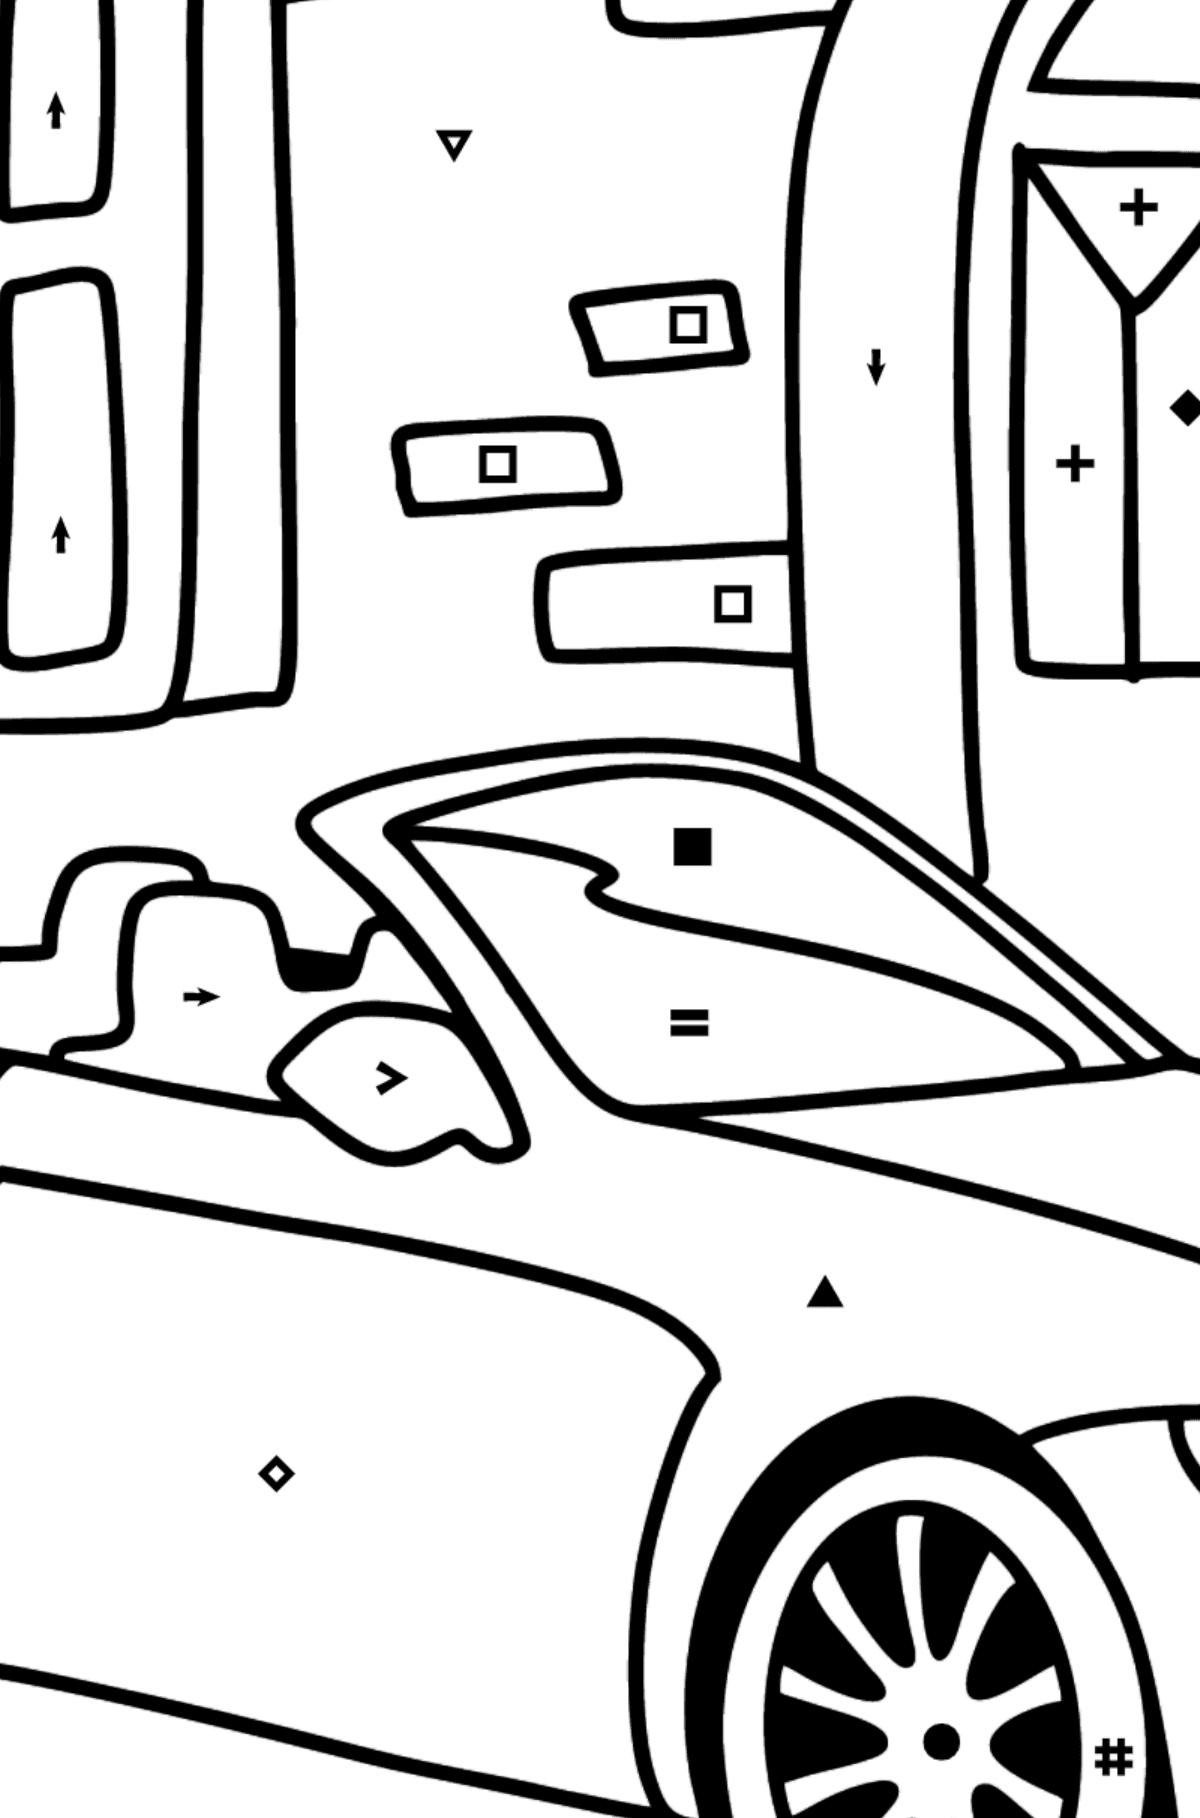 BMW Convertible coloring page - Coloring by Symbols for Kids